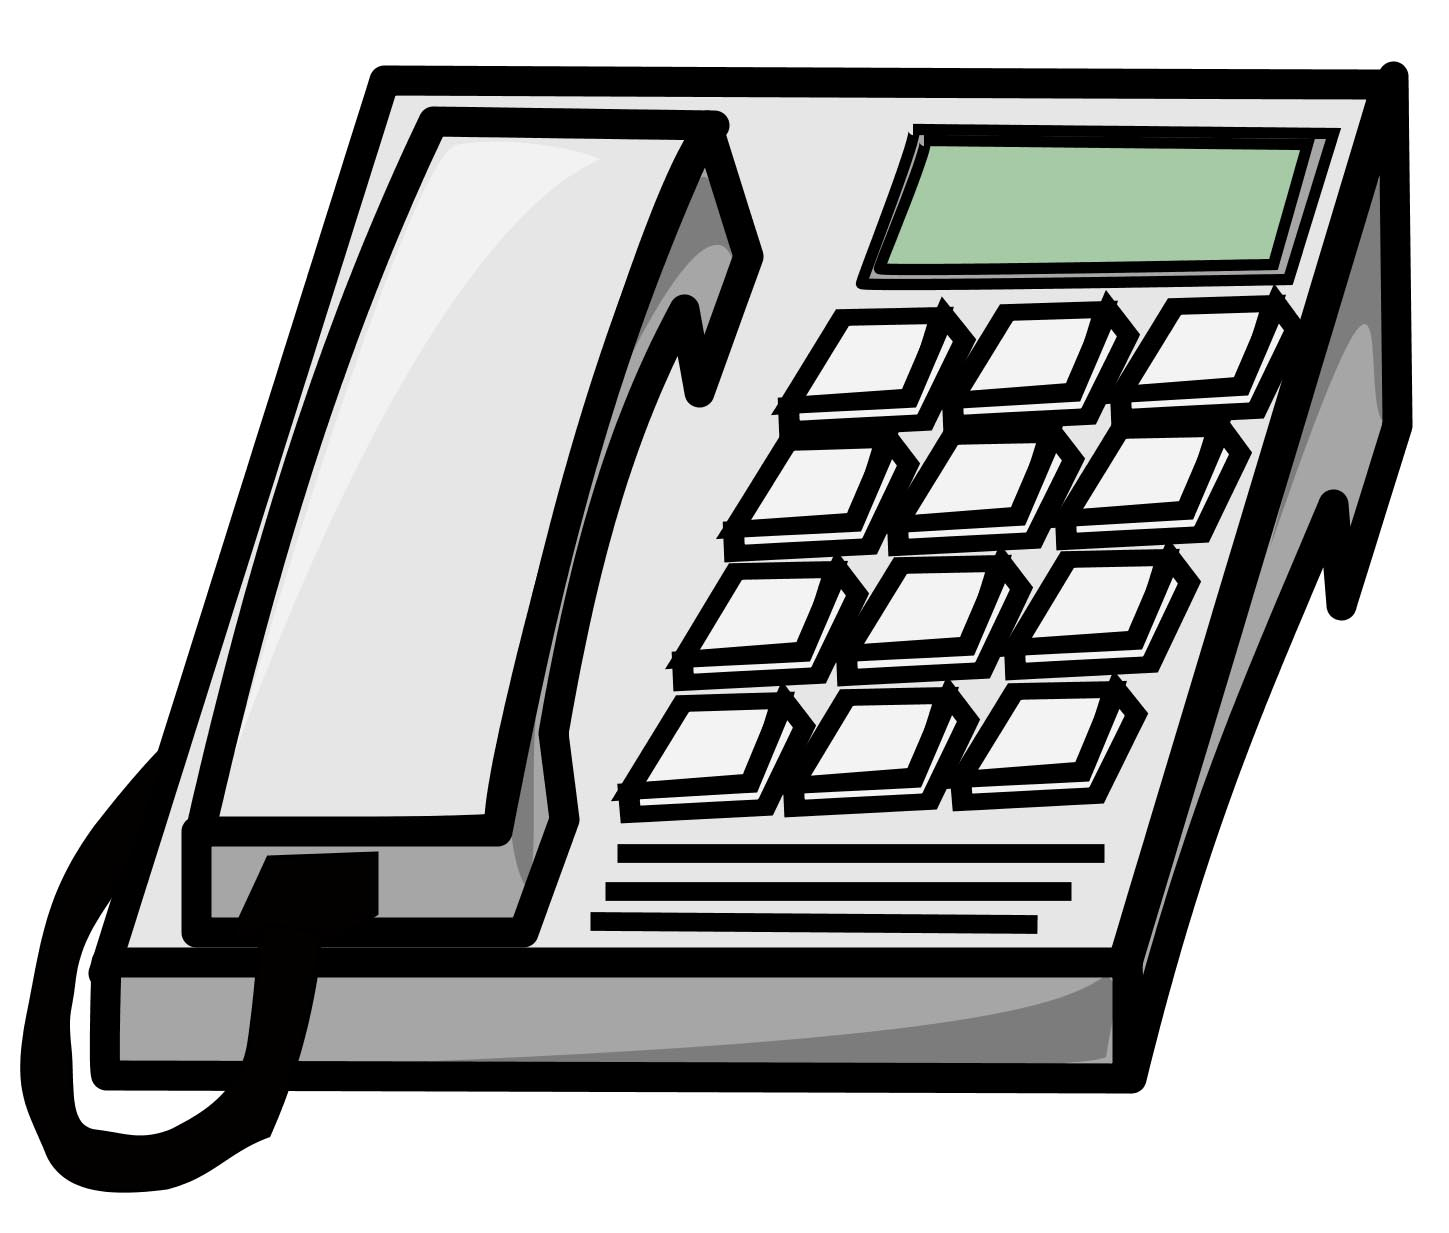 Phone clip art images. Telephone clipart phine